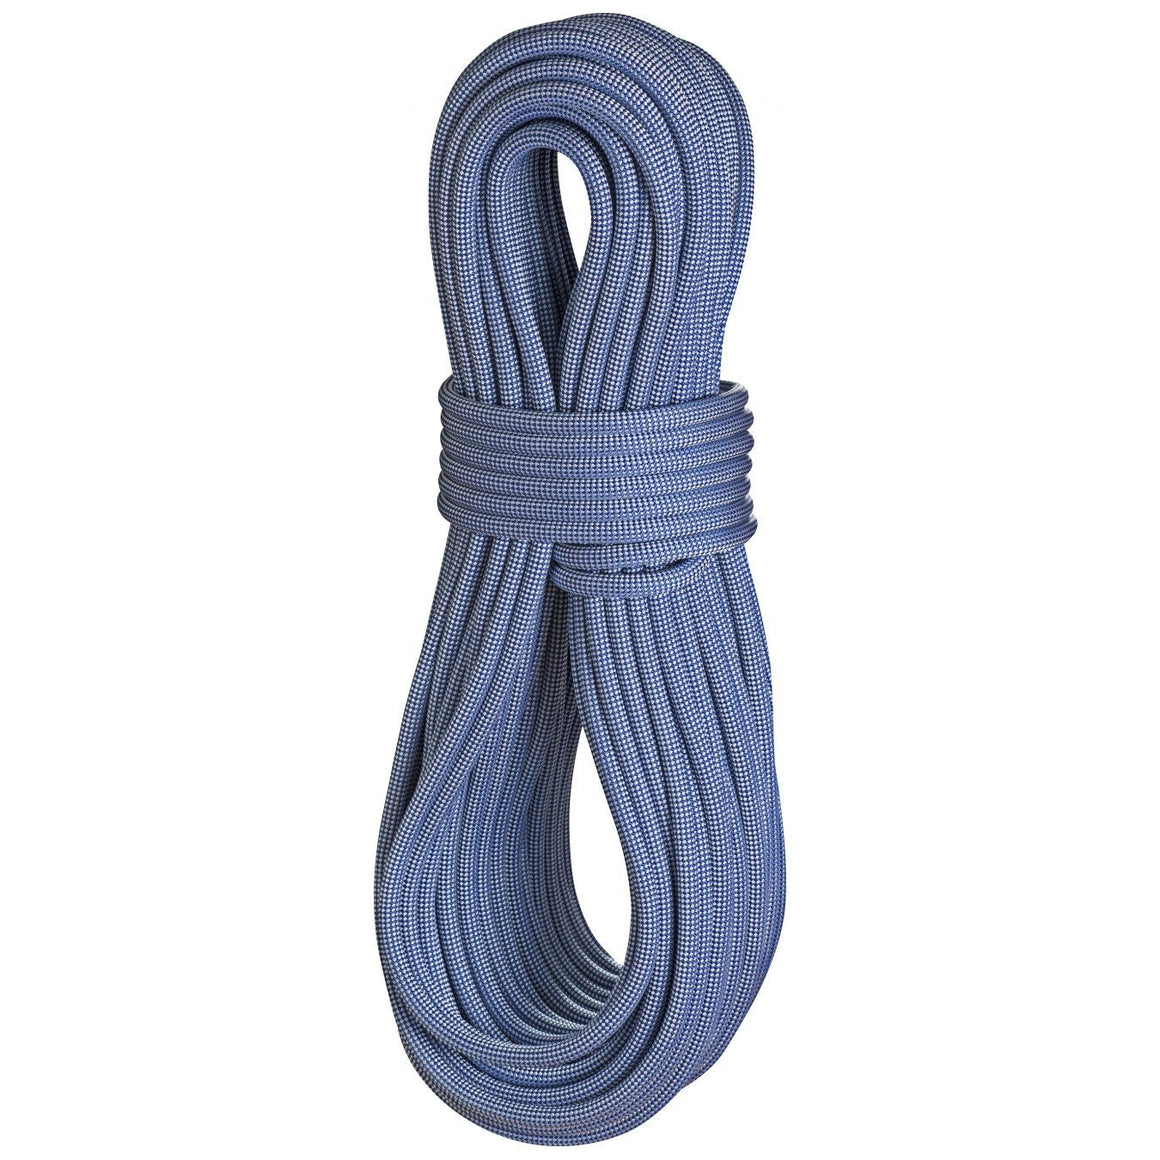 Edelrid Eagle Lite 9.5mm x 70m (Polar) climbing rope